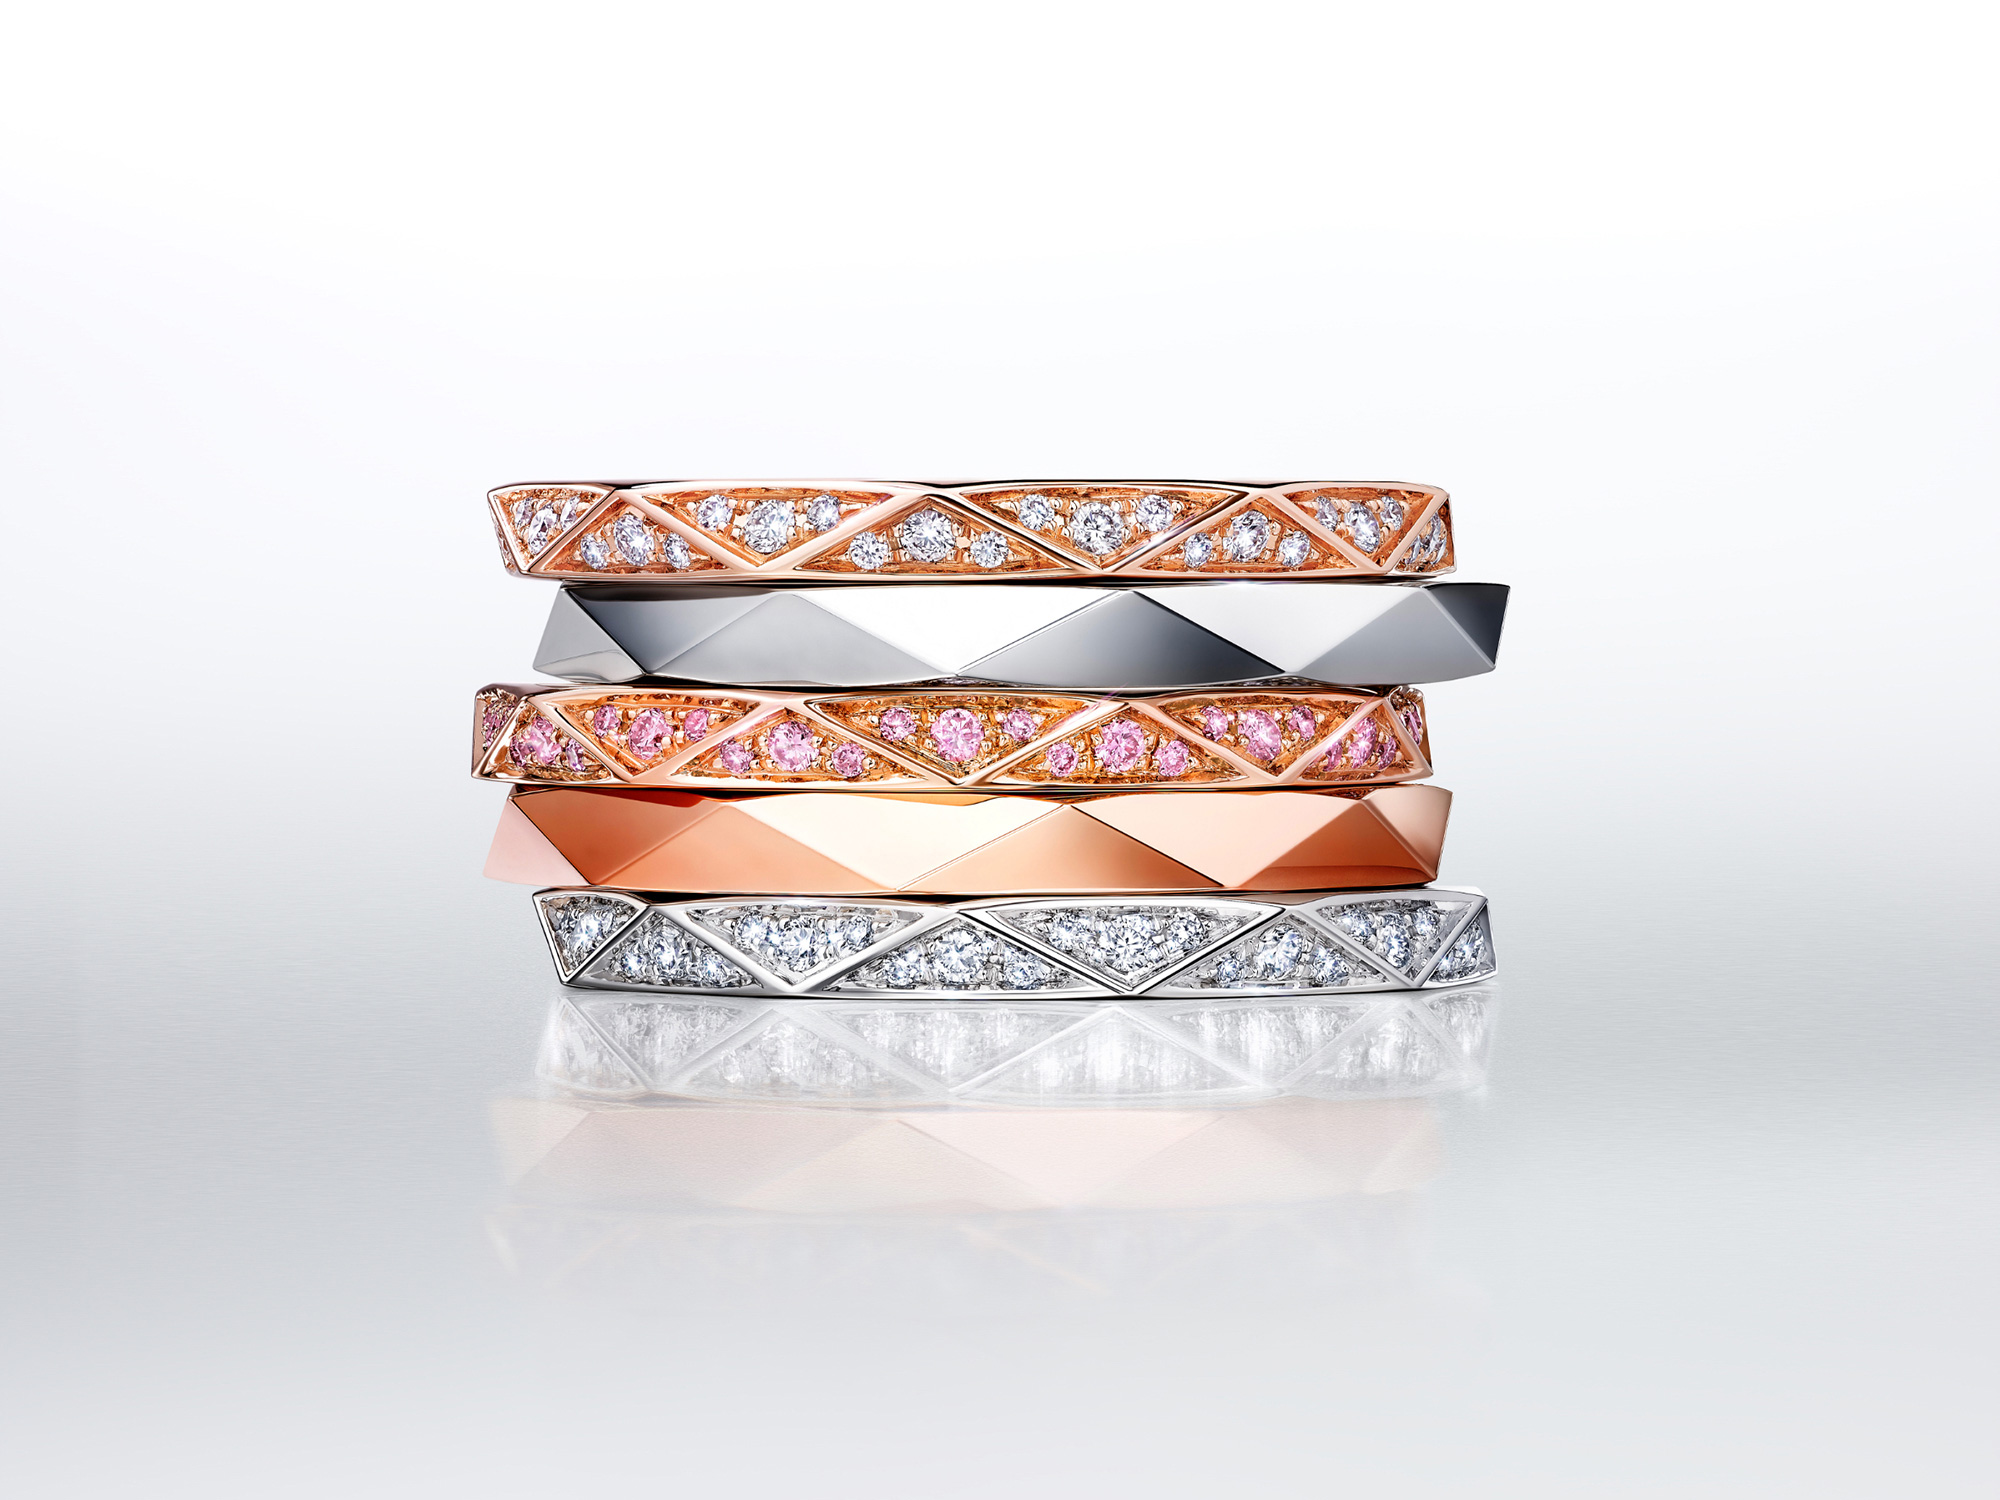 Stacked Laurence Graff signature bands in white Gold and rose gold, set with dIamond paves or plain